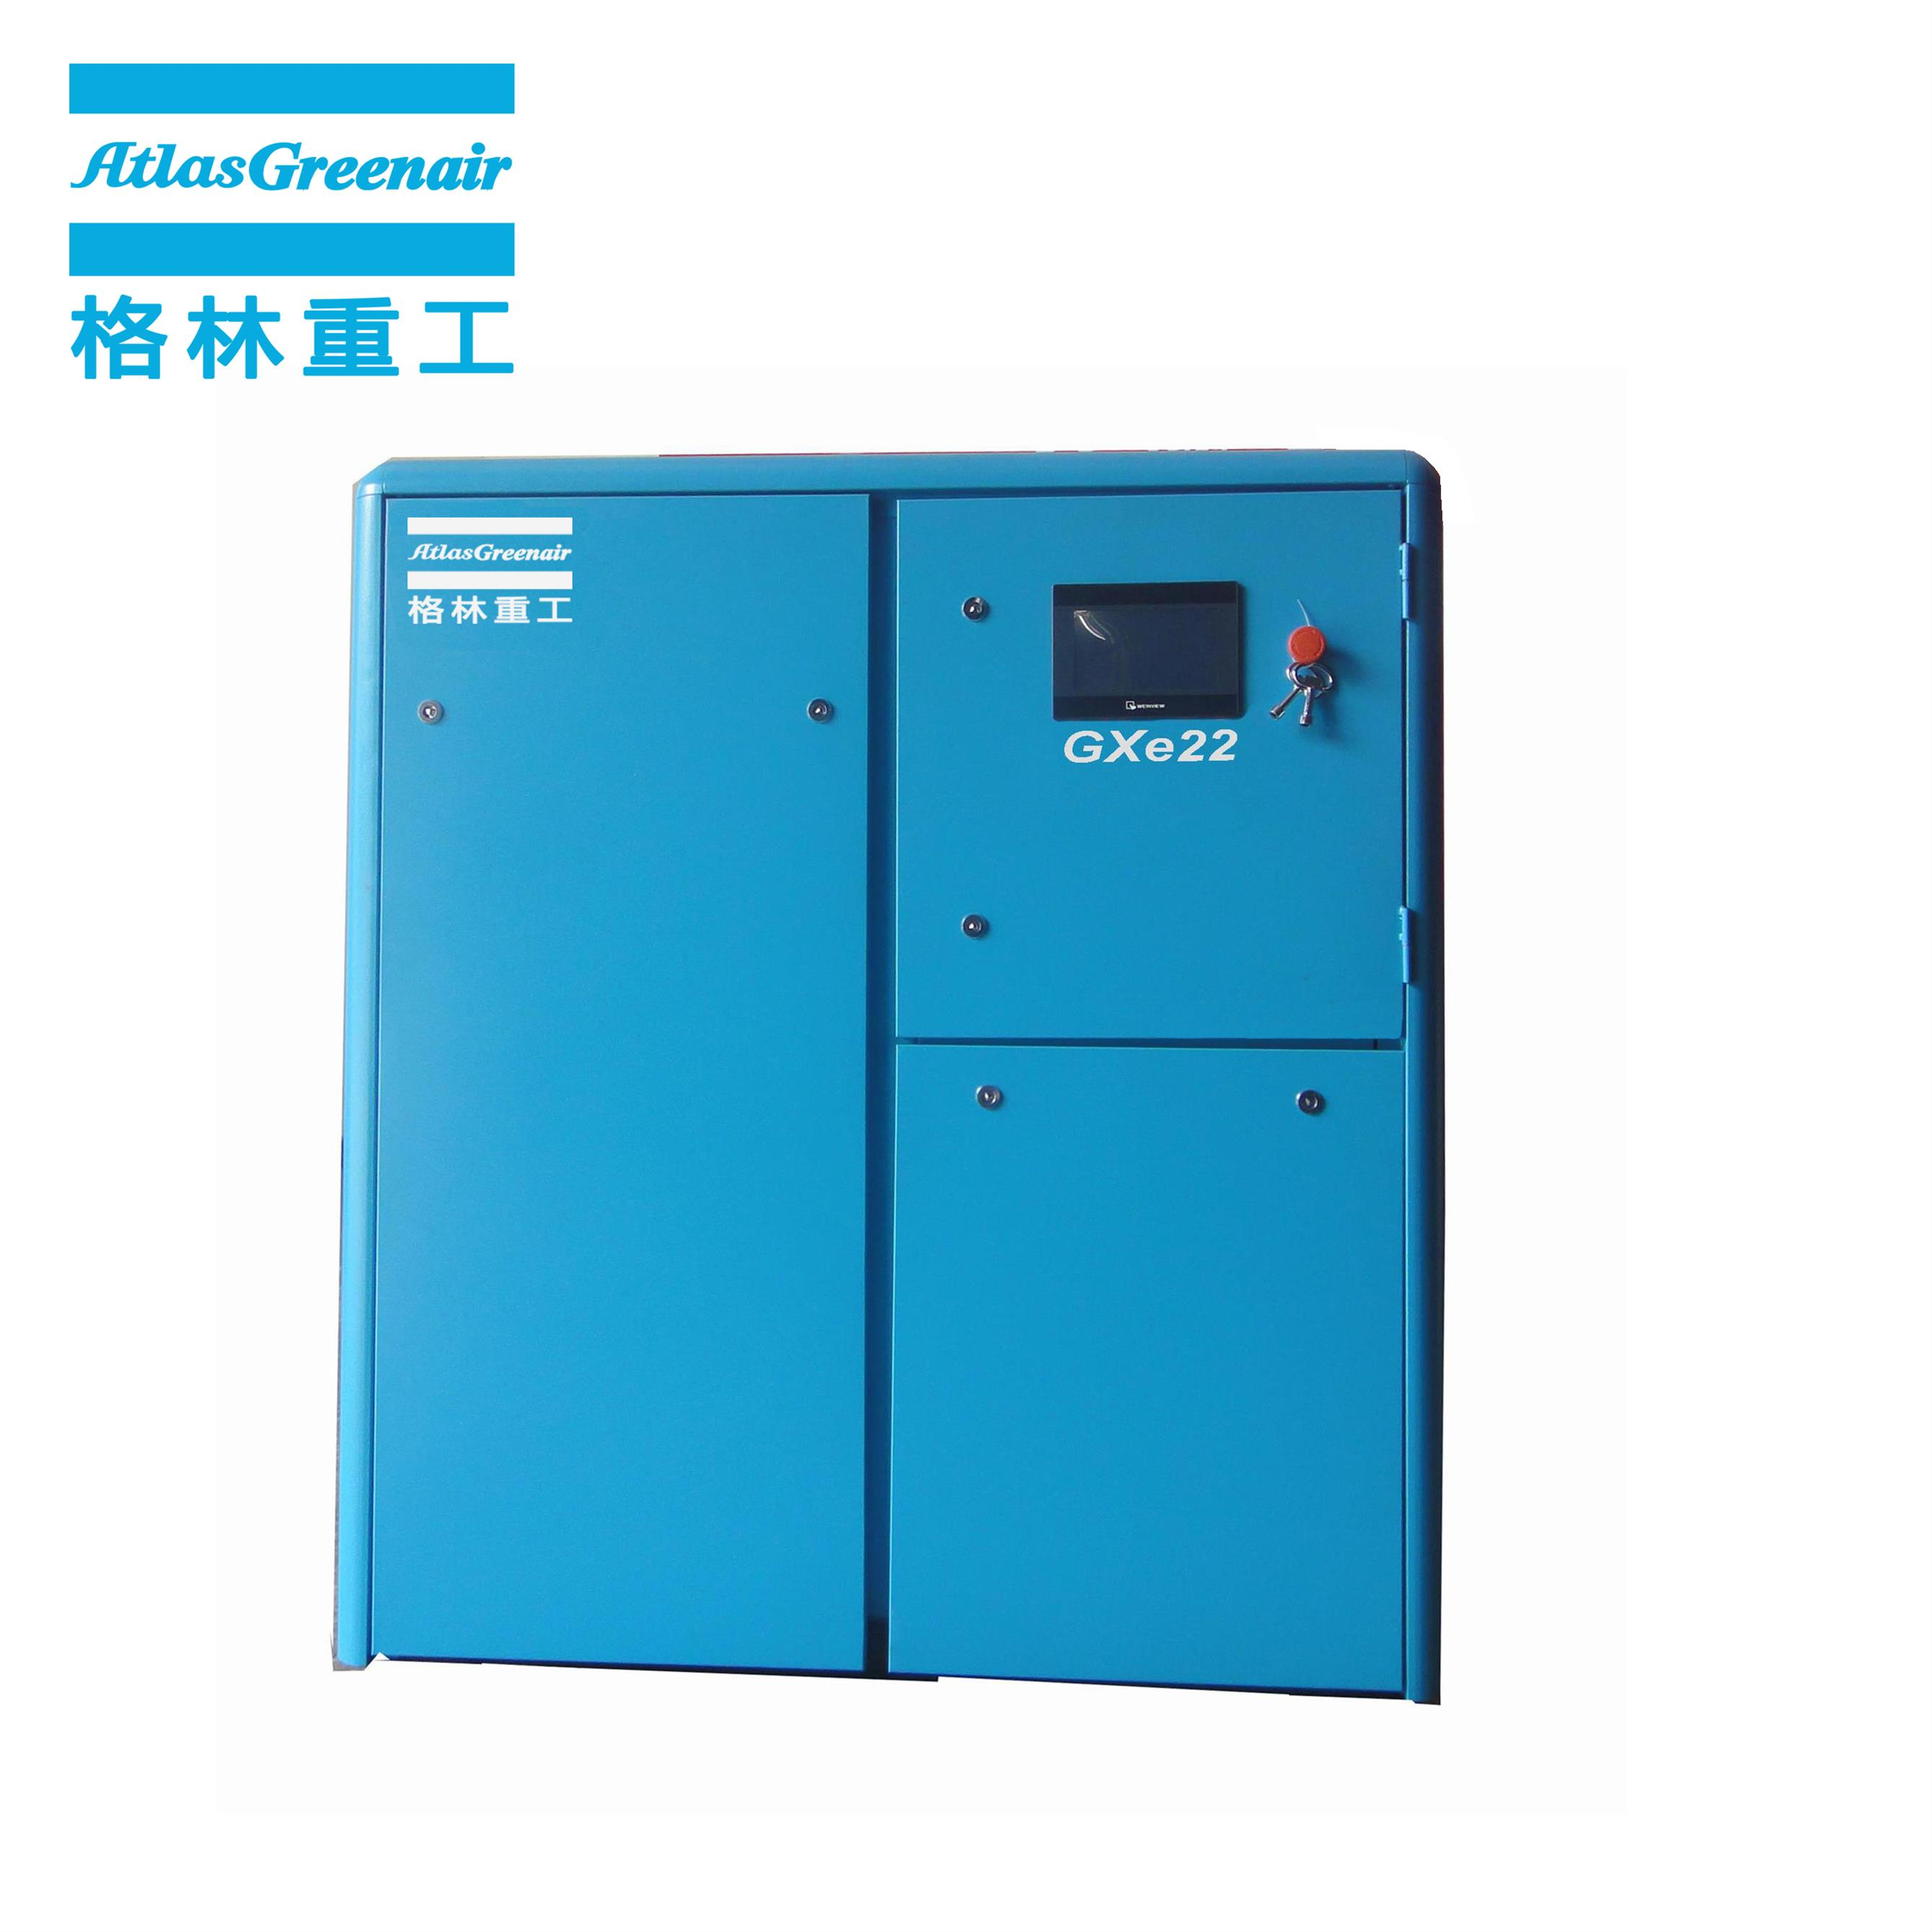 Atlas Greenair Screw Air Compressor top fixed speed rotary screw air compressor company wholesale-2